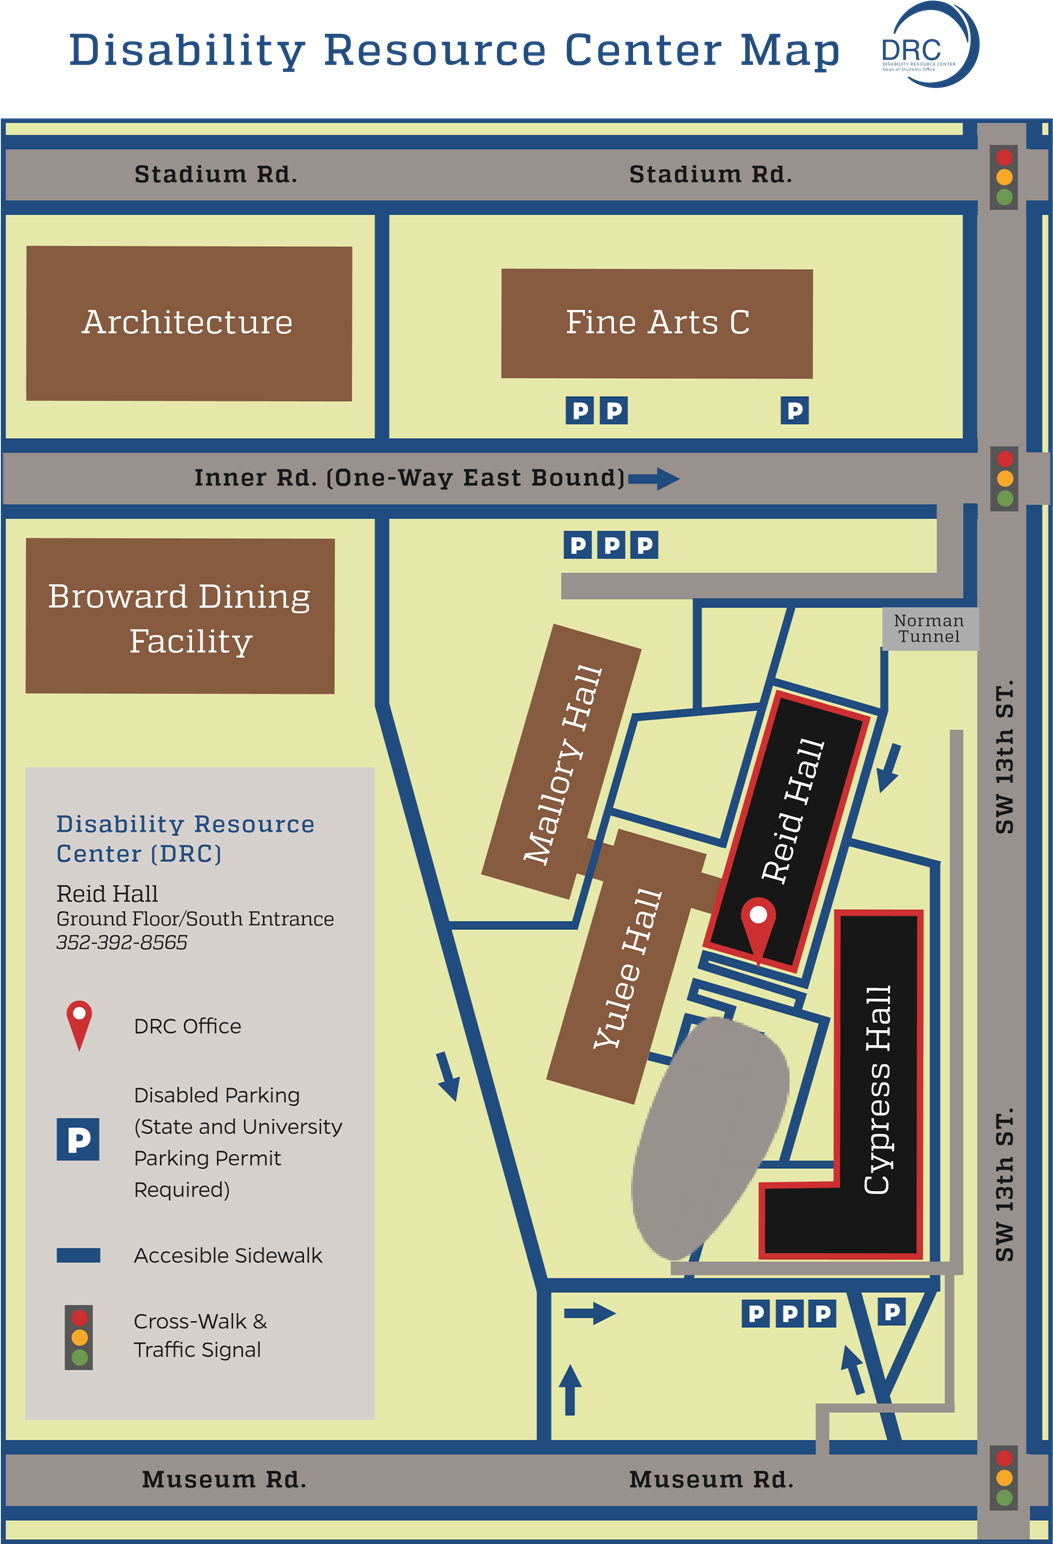 graphic with map of drc, disability resource center locates at Cypress Hall Ground Floor/South Entrance, contact number is 3523928565